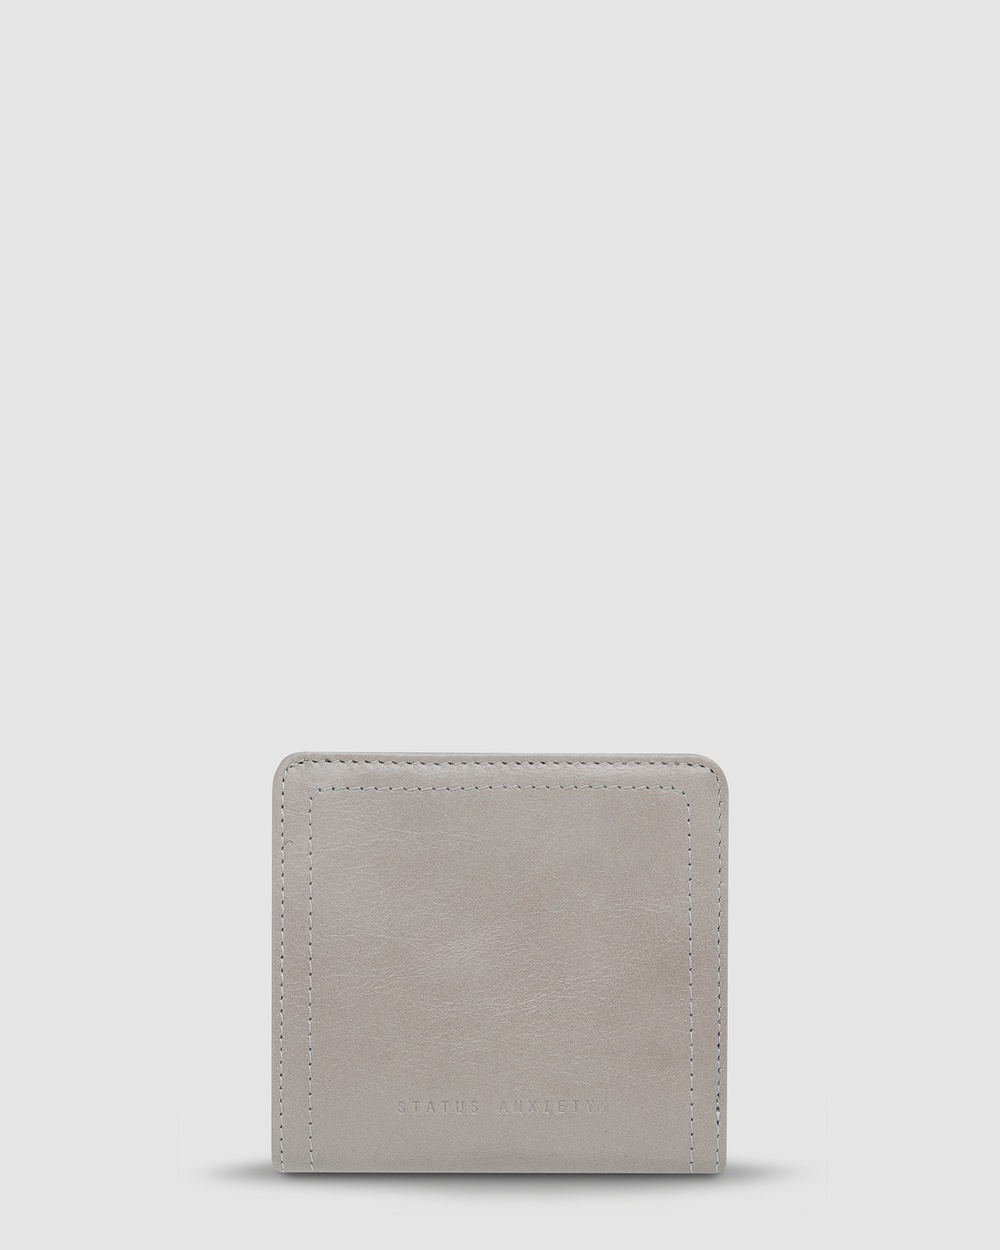 Status Anxiety In Another Life Wallet Wallets Light Grey